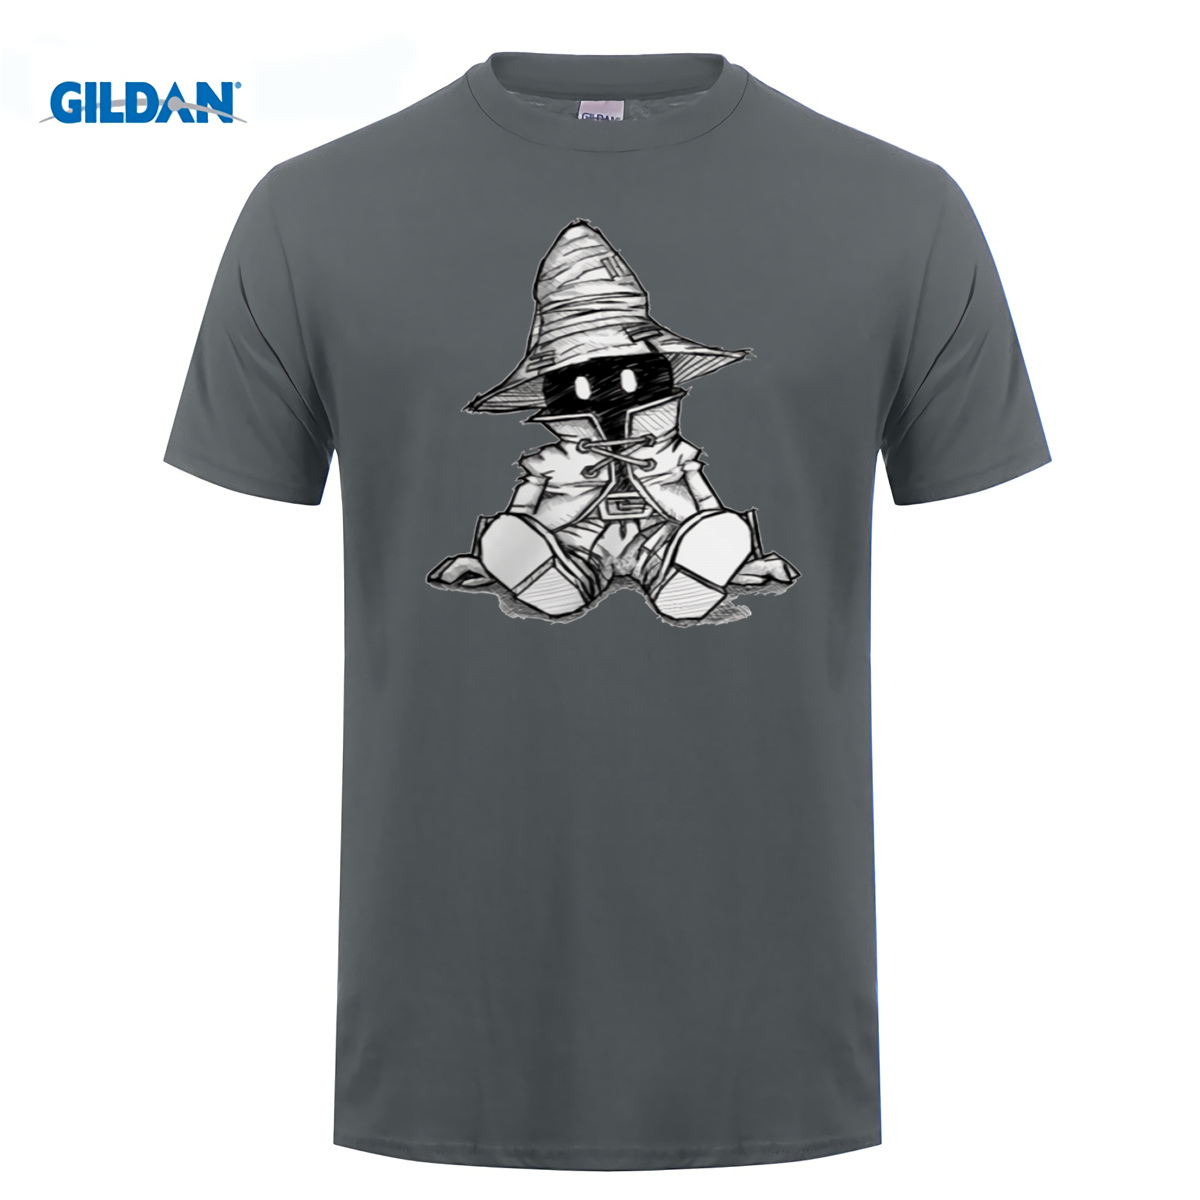 GILDAN Vivi, Final Fantasy IX T Shirt ...